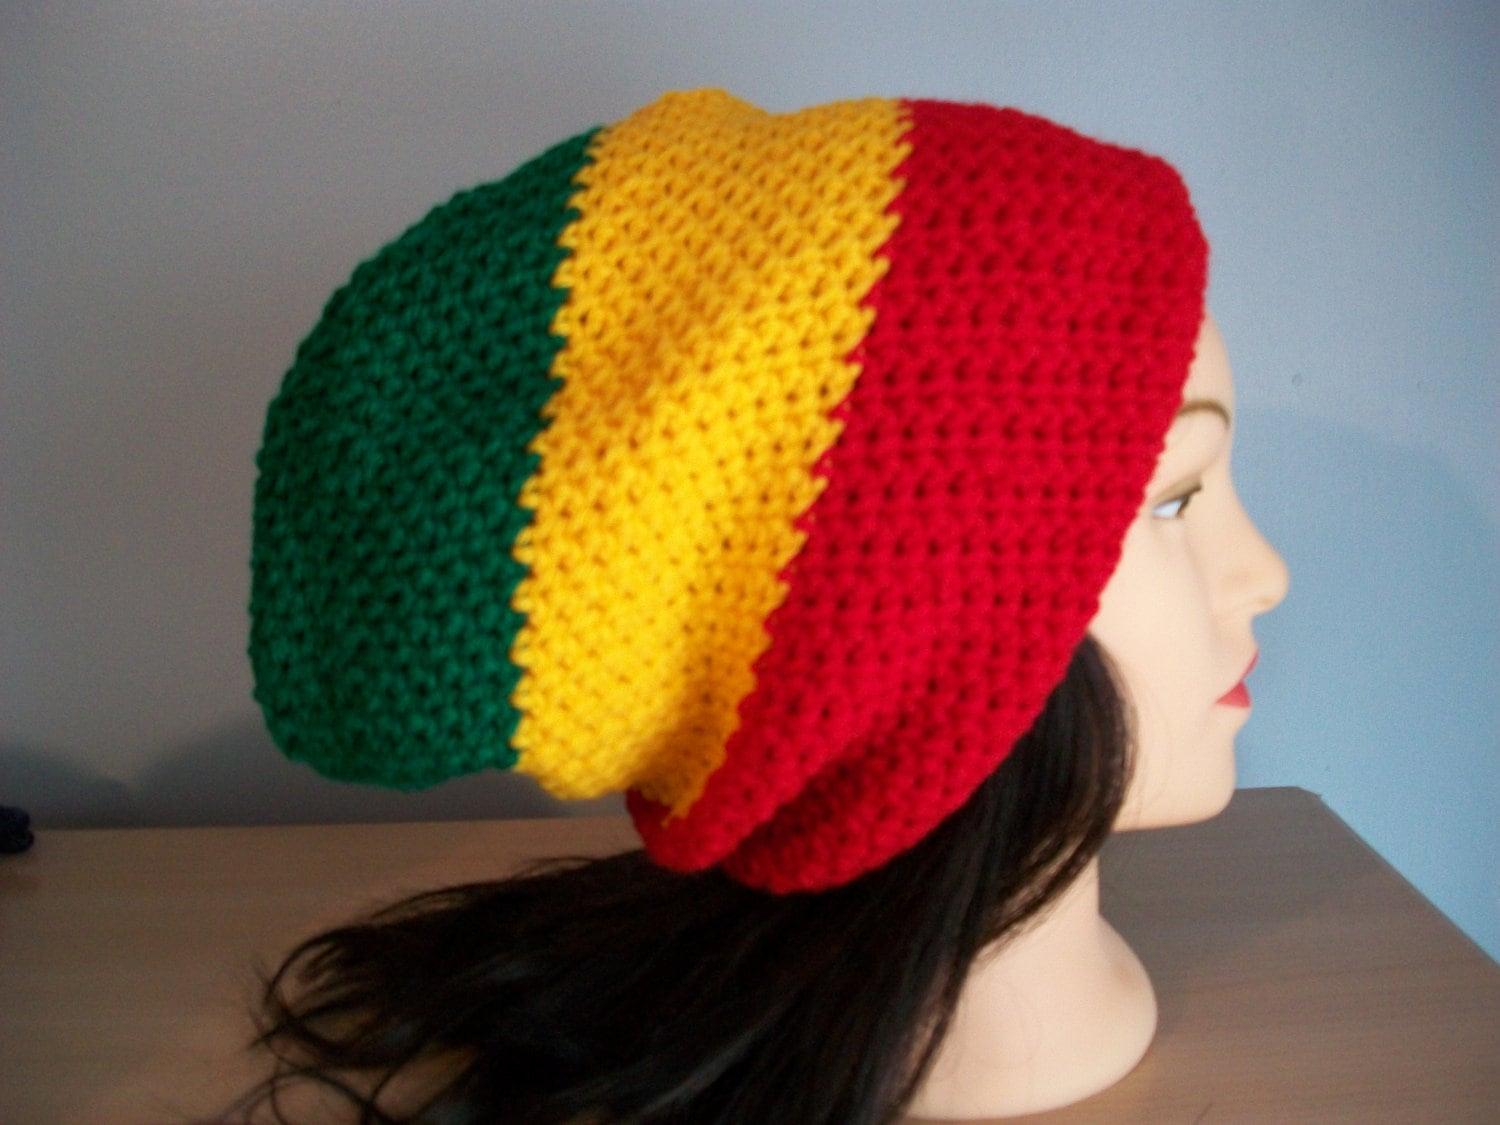 Knitting Patterns For Rasta Hats : Rasta Hat Slouchy Stocking Cap Crocheted